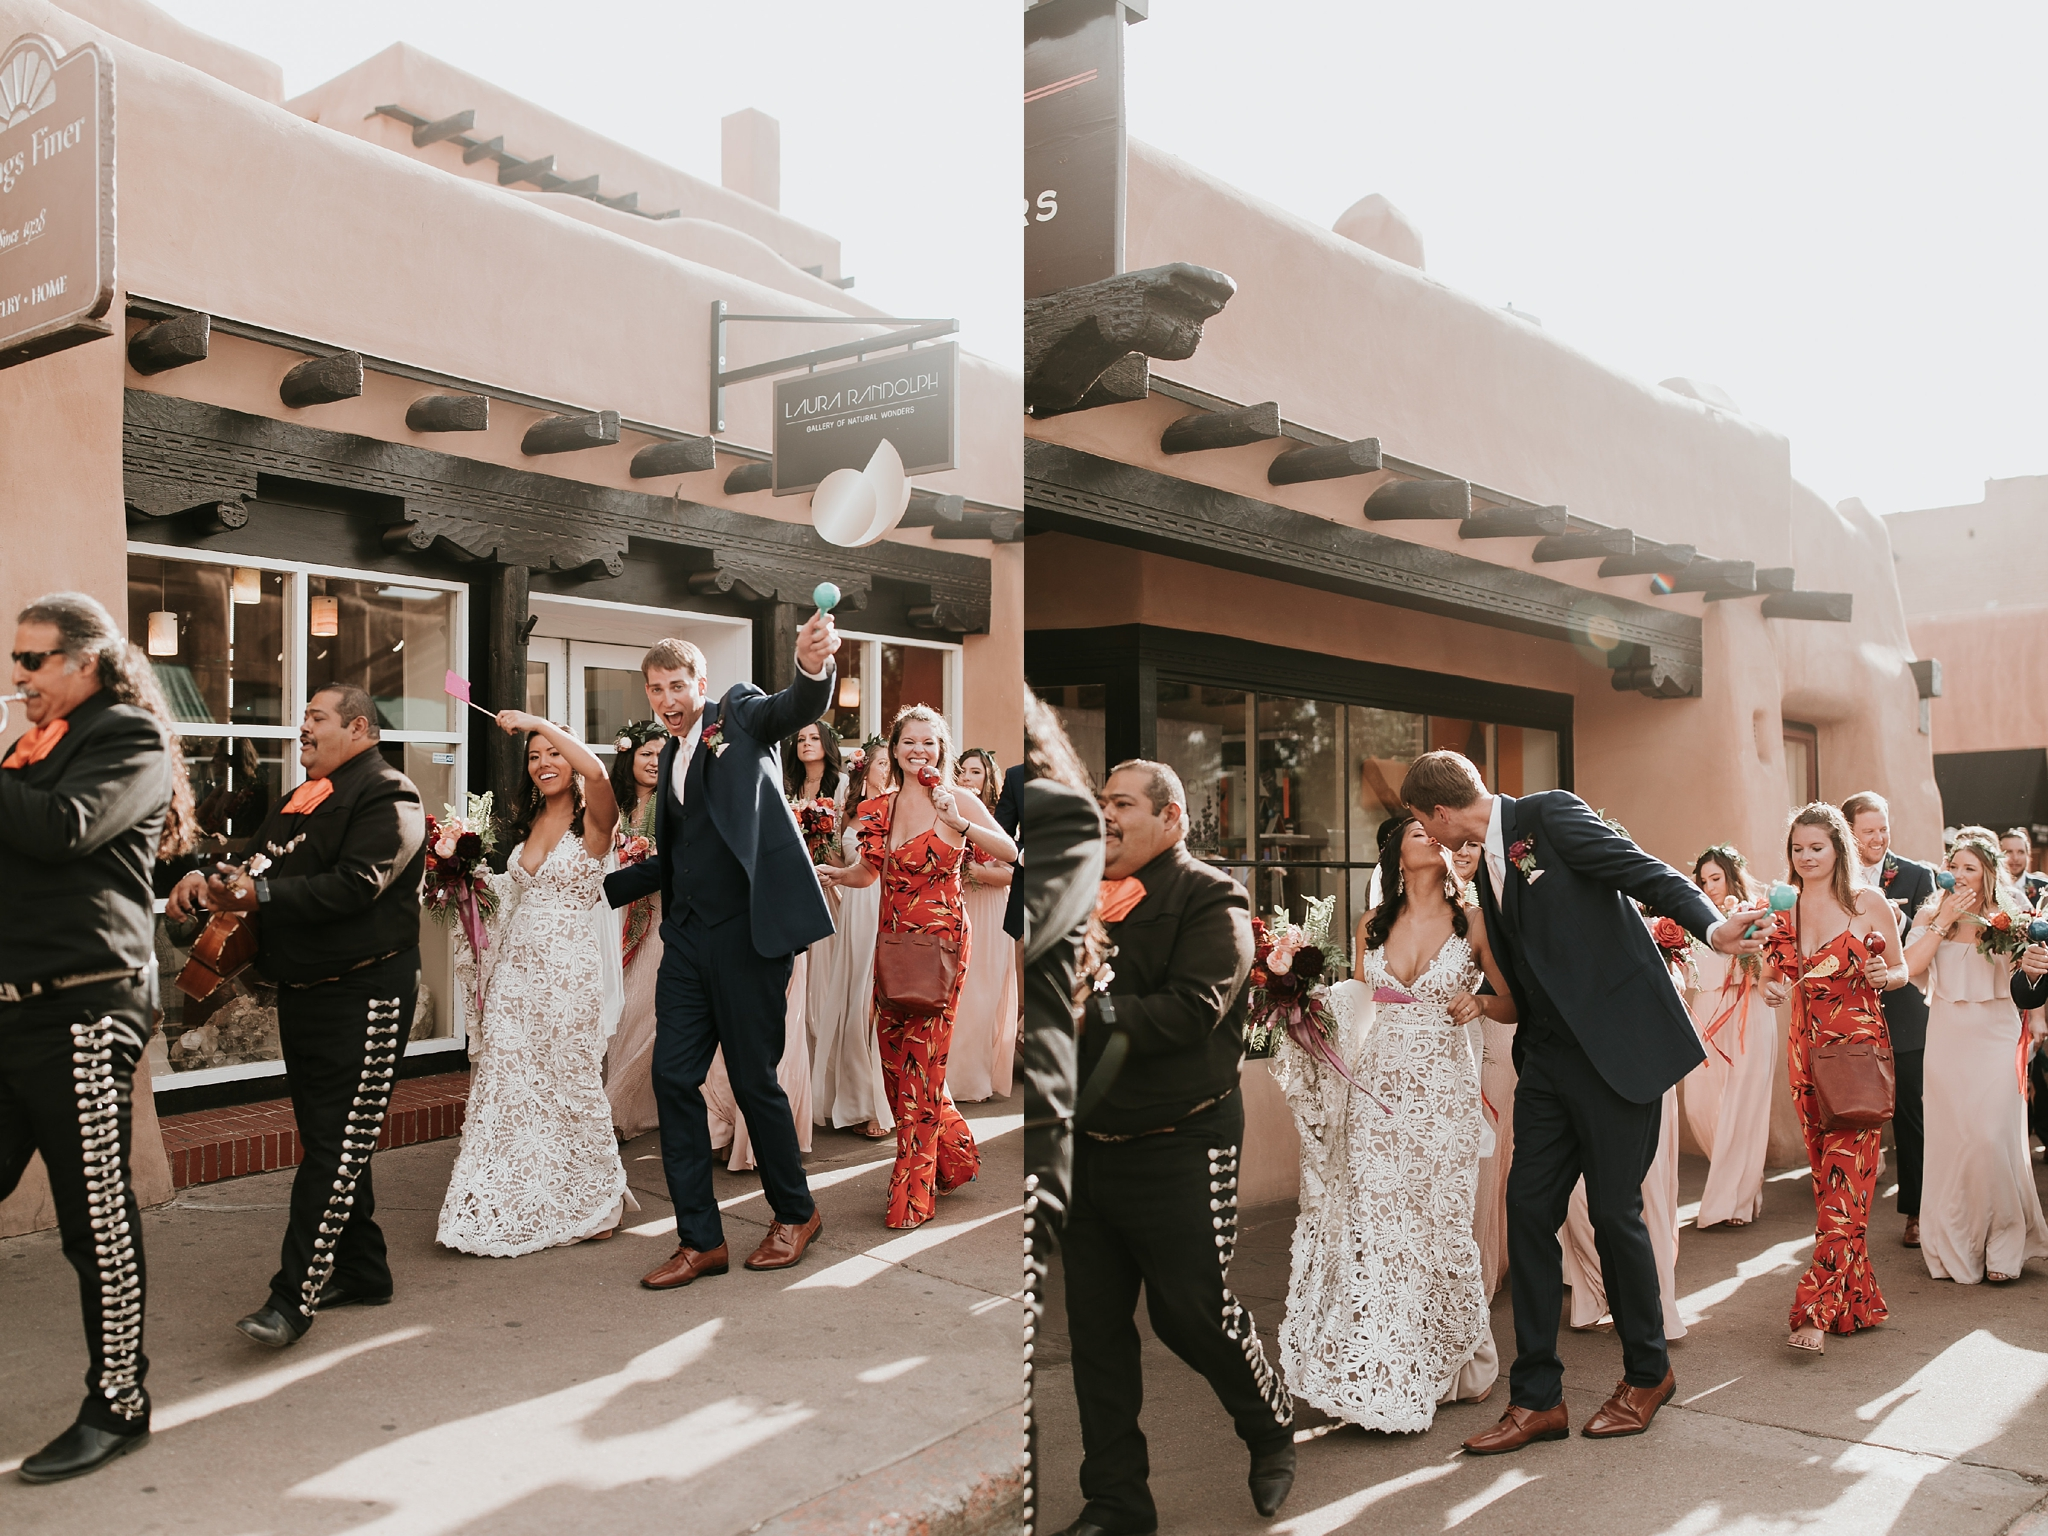 Alicia+lucia+photography+-+albuquerque+wedding+photographer+-+santa+fe+wedding+photography+-+new+mexico+wedding+photographer+-+new+mexico+wedding+-+santa+fe+wedding+-+albuquerque+wedding+-+southwest+wedding+traditions_0008.jpg